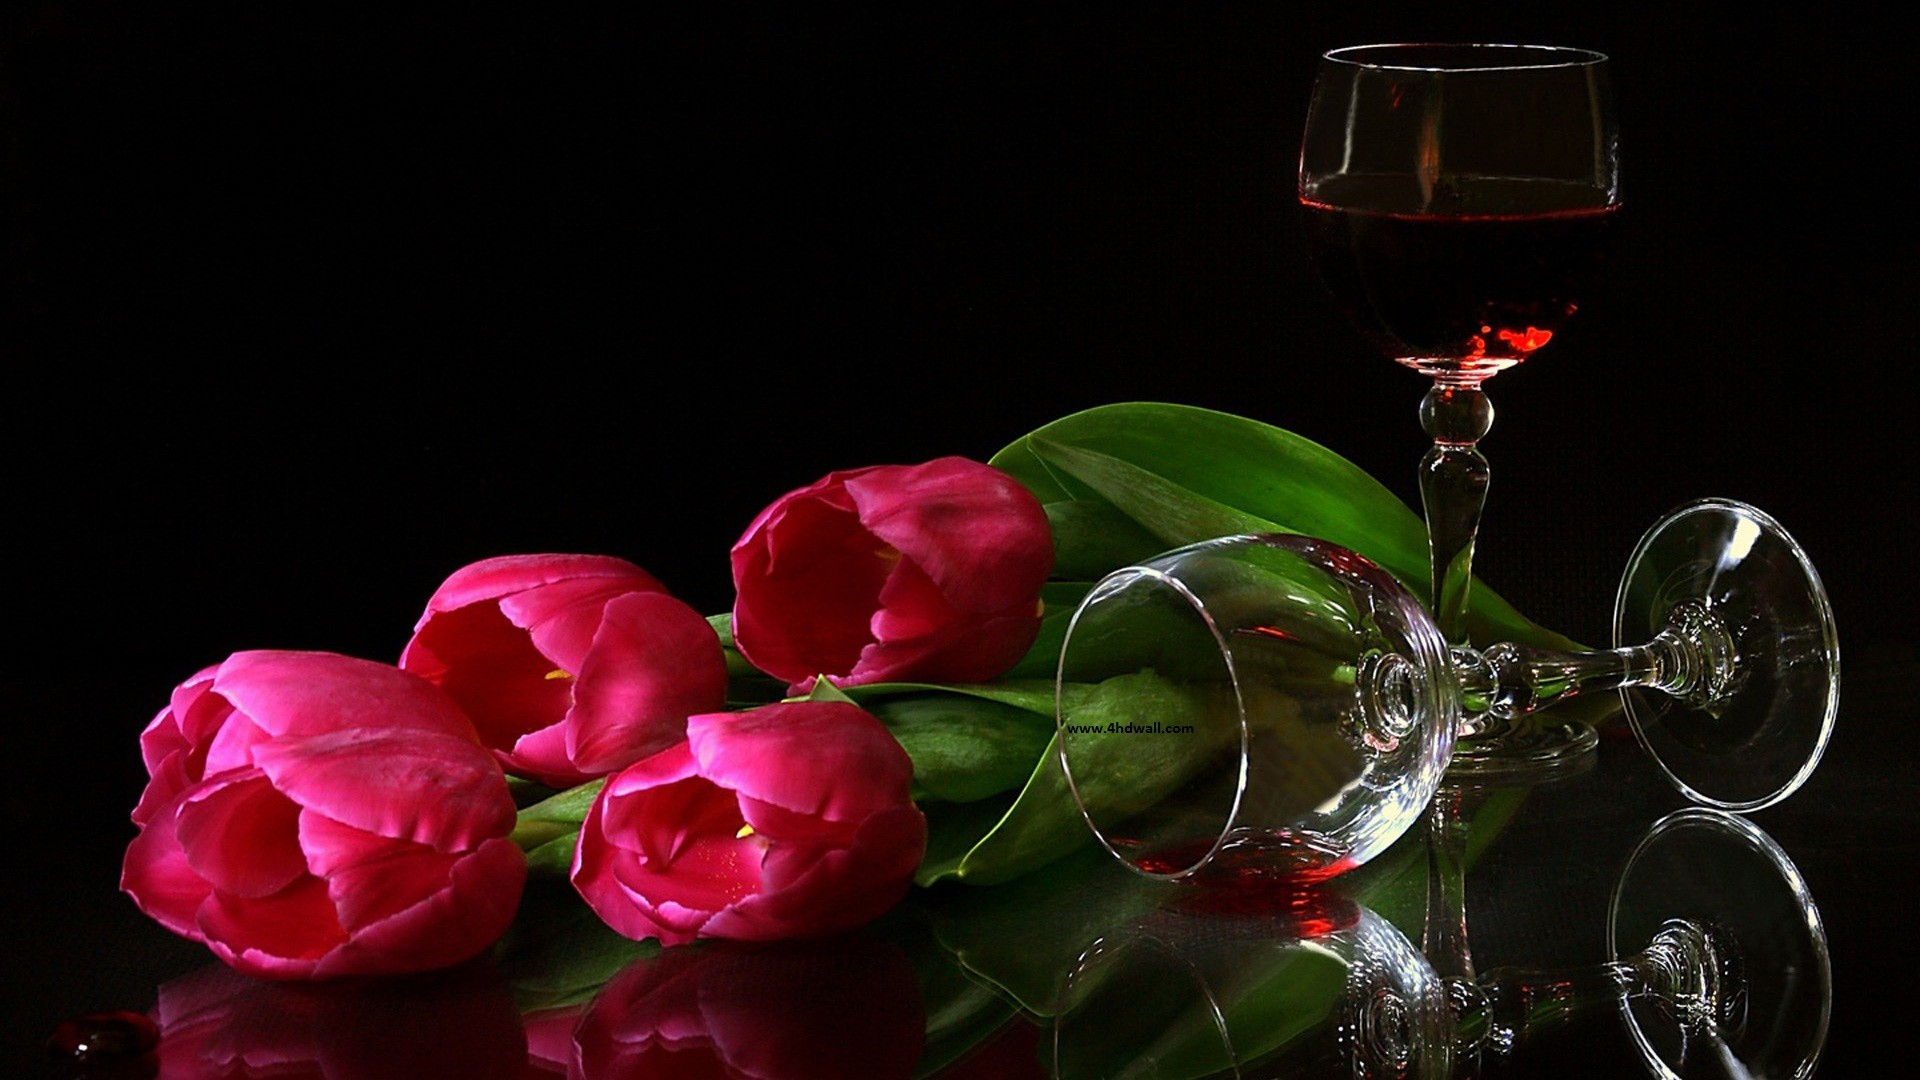 Res: 1920x1080, red flowers hd wallpapers HD Wallpaper